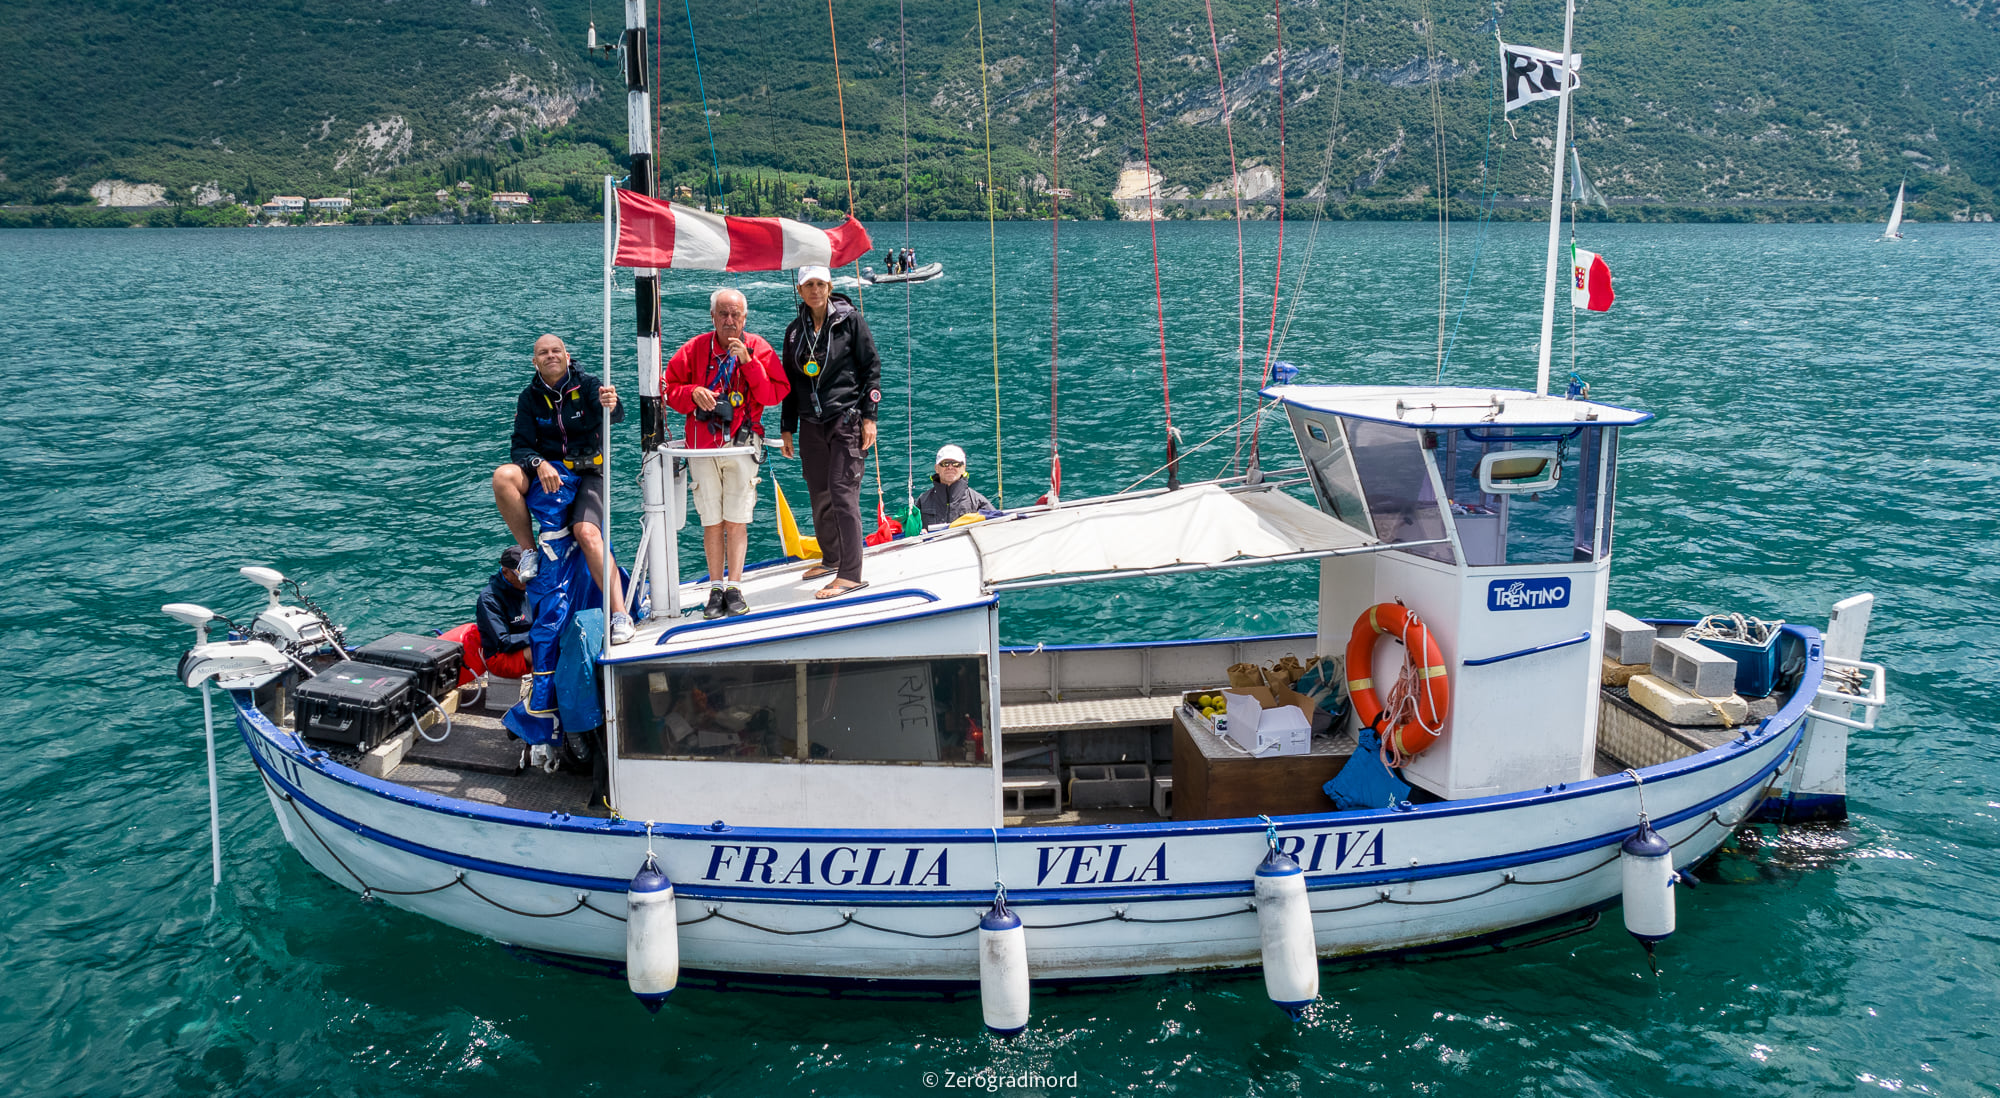 Race committee on the small boat